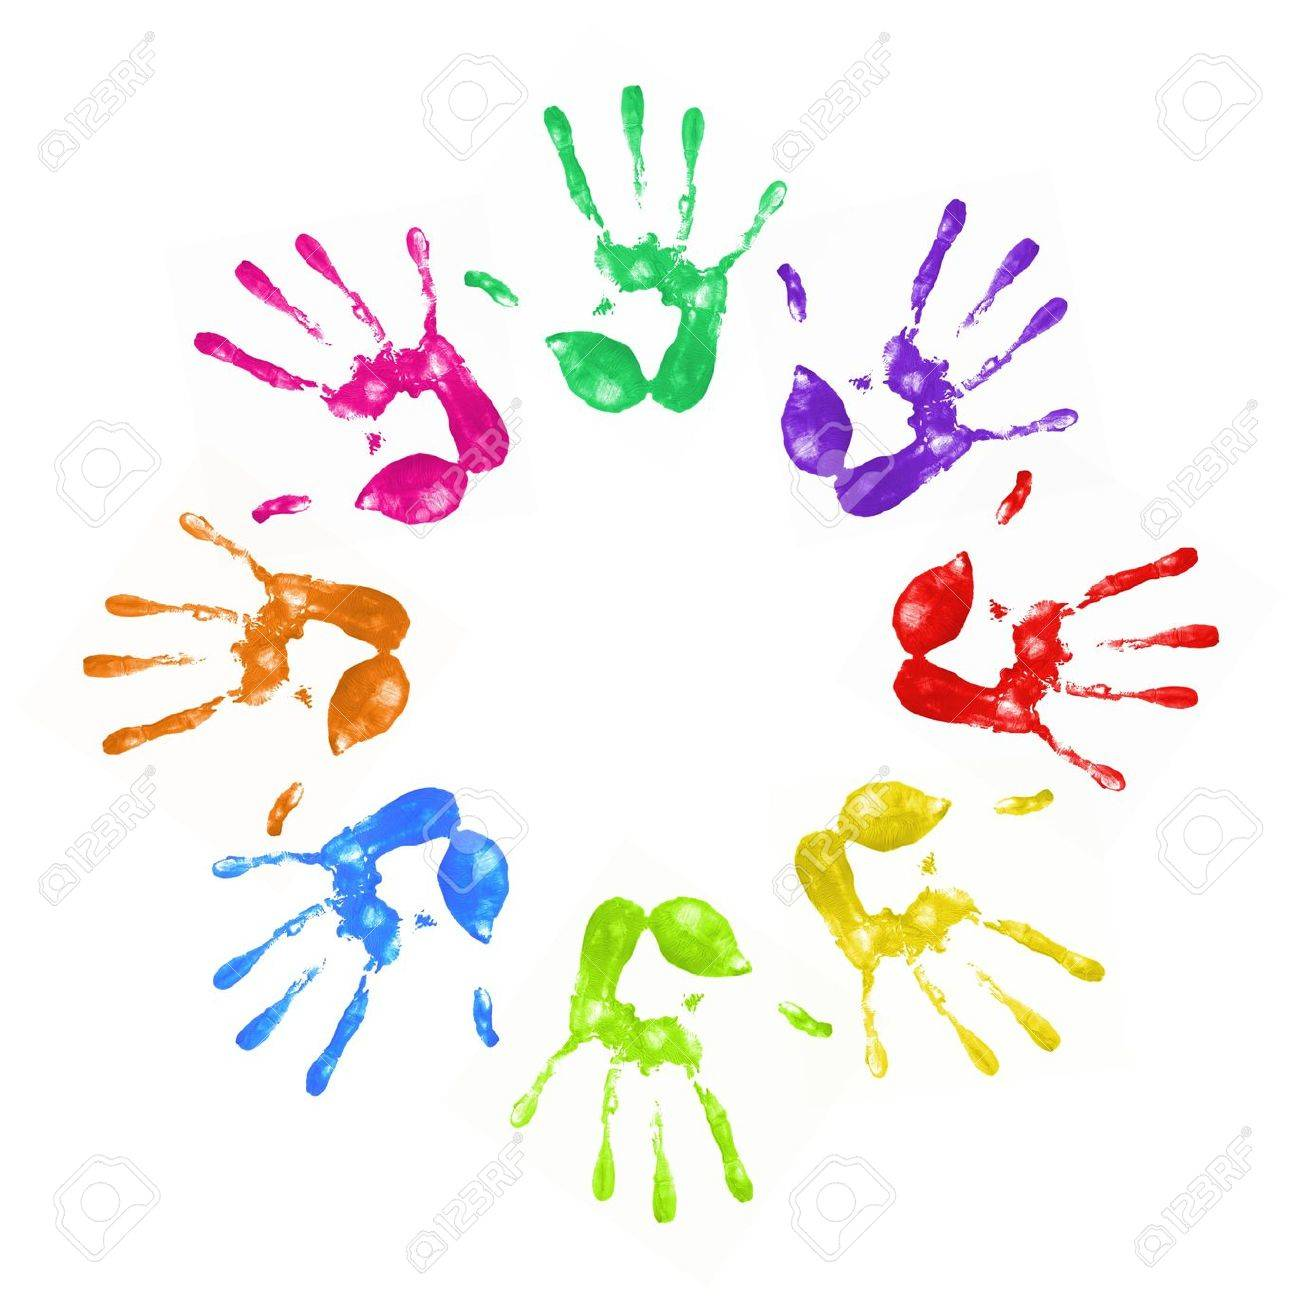 a lot of colorful hand prints on white background Stock Photo - 9135987